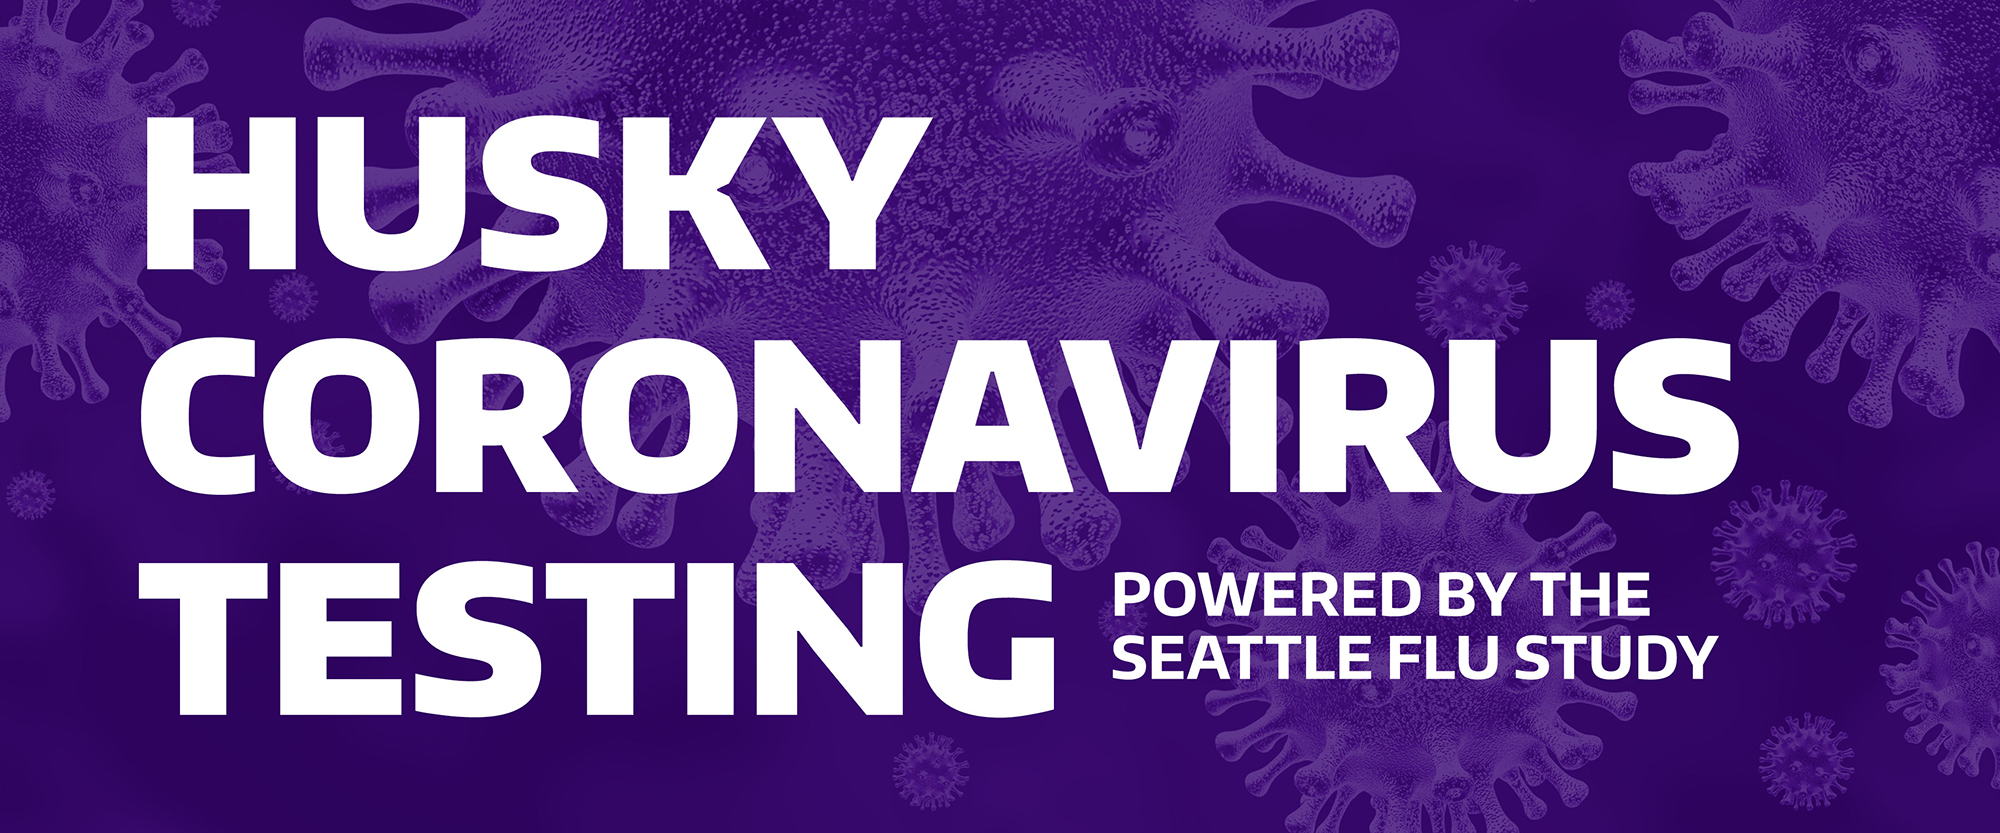 Husky Coronavirus Testing - Powered by the Seattle Flu Study